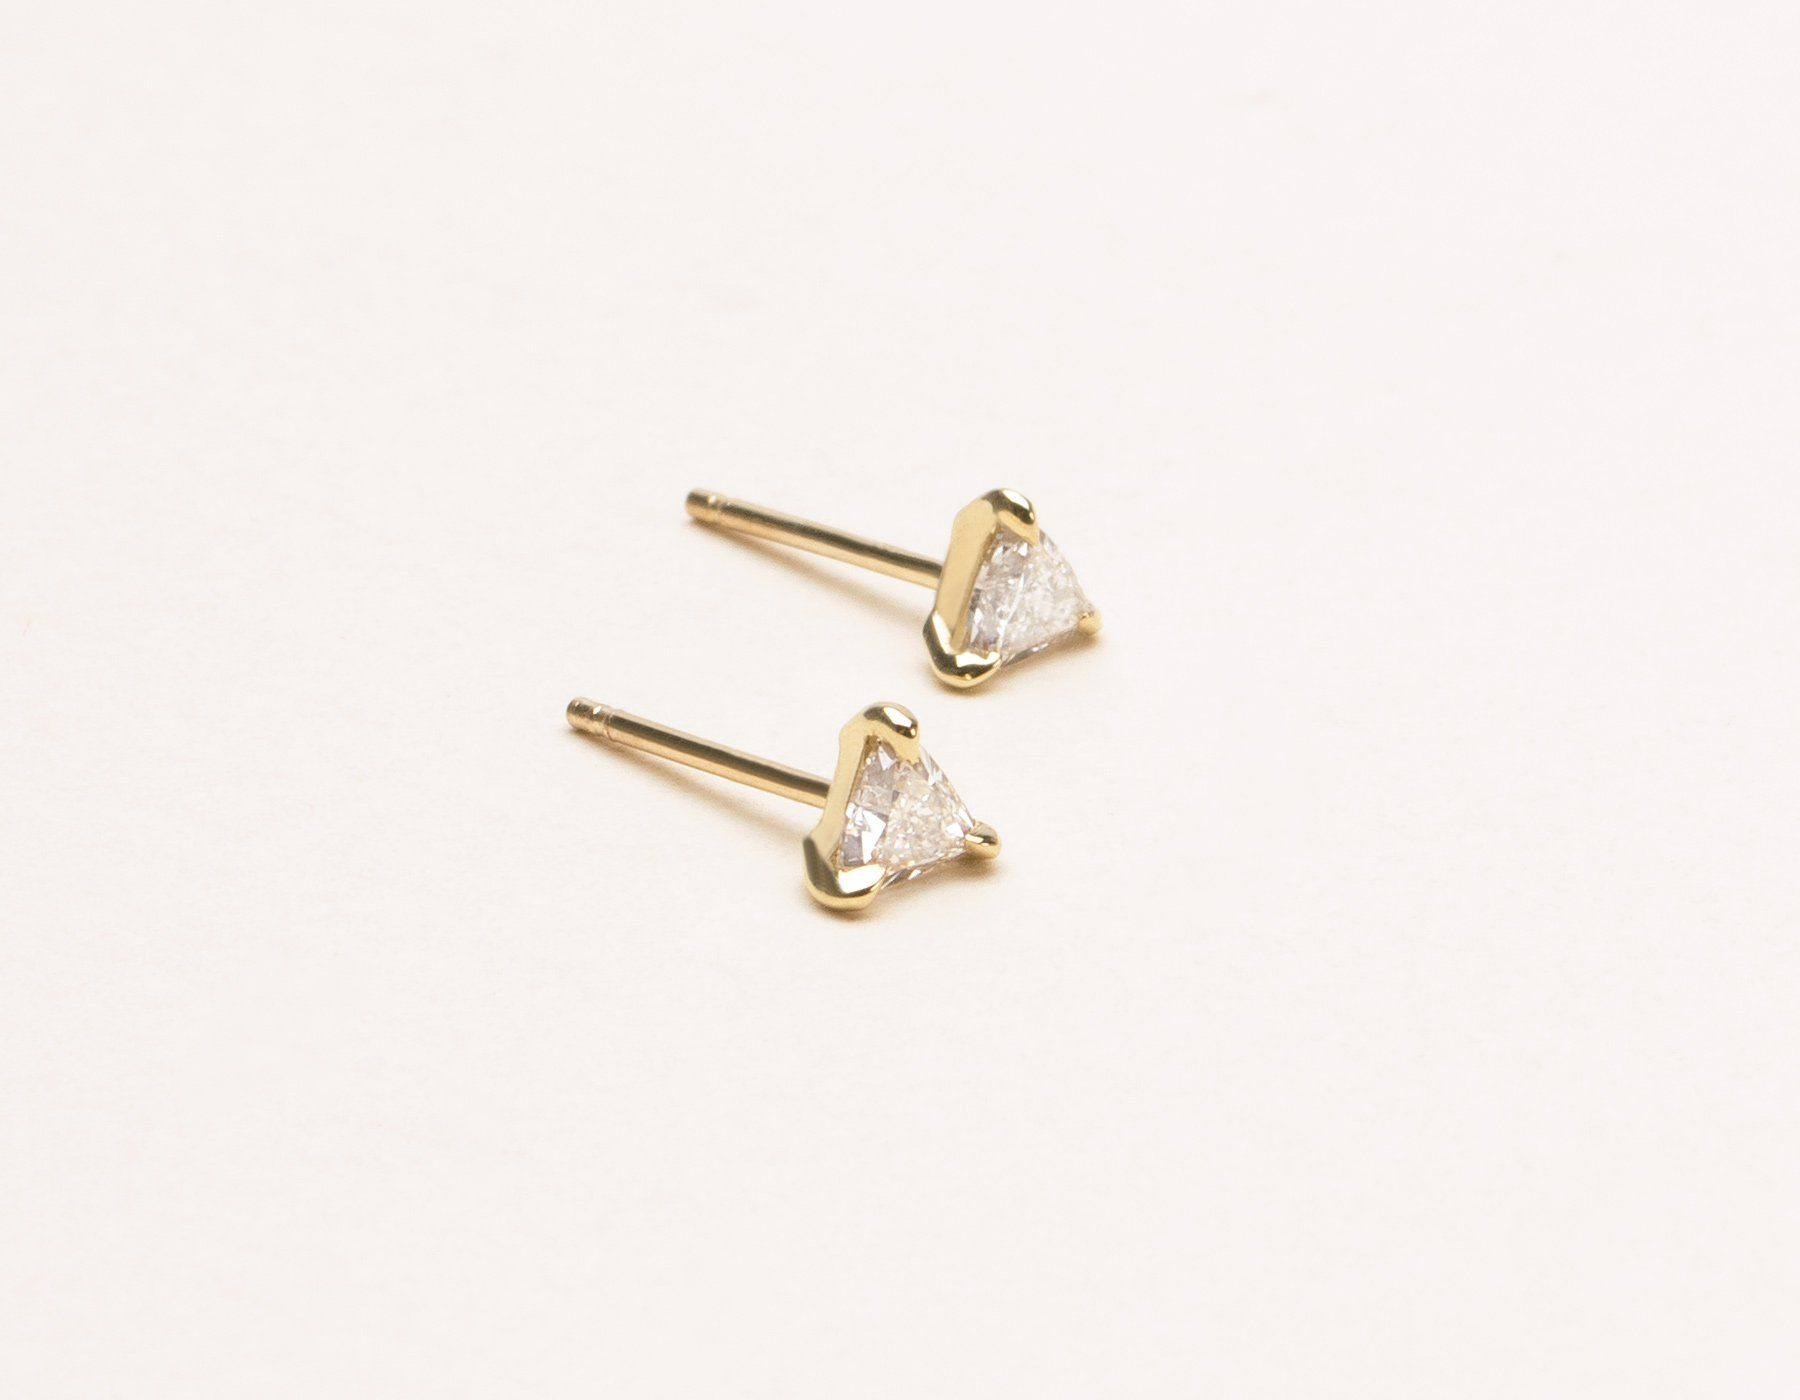 Round Diamond Stud Earrings 1 4 ct tw in 14K Rose Gold